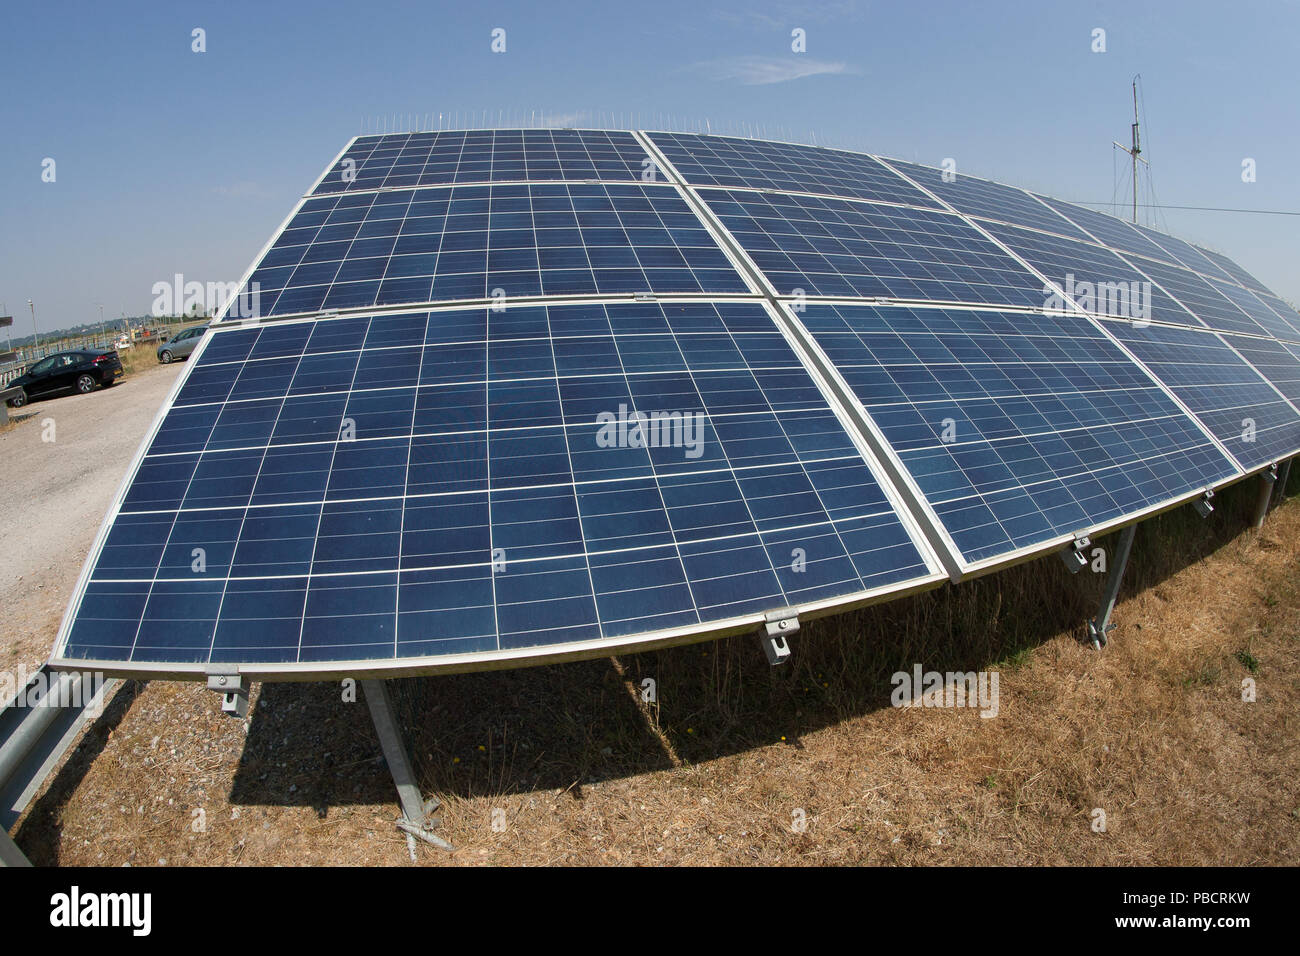 solar panel electricity supply - Stock Image